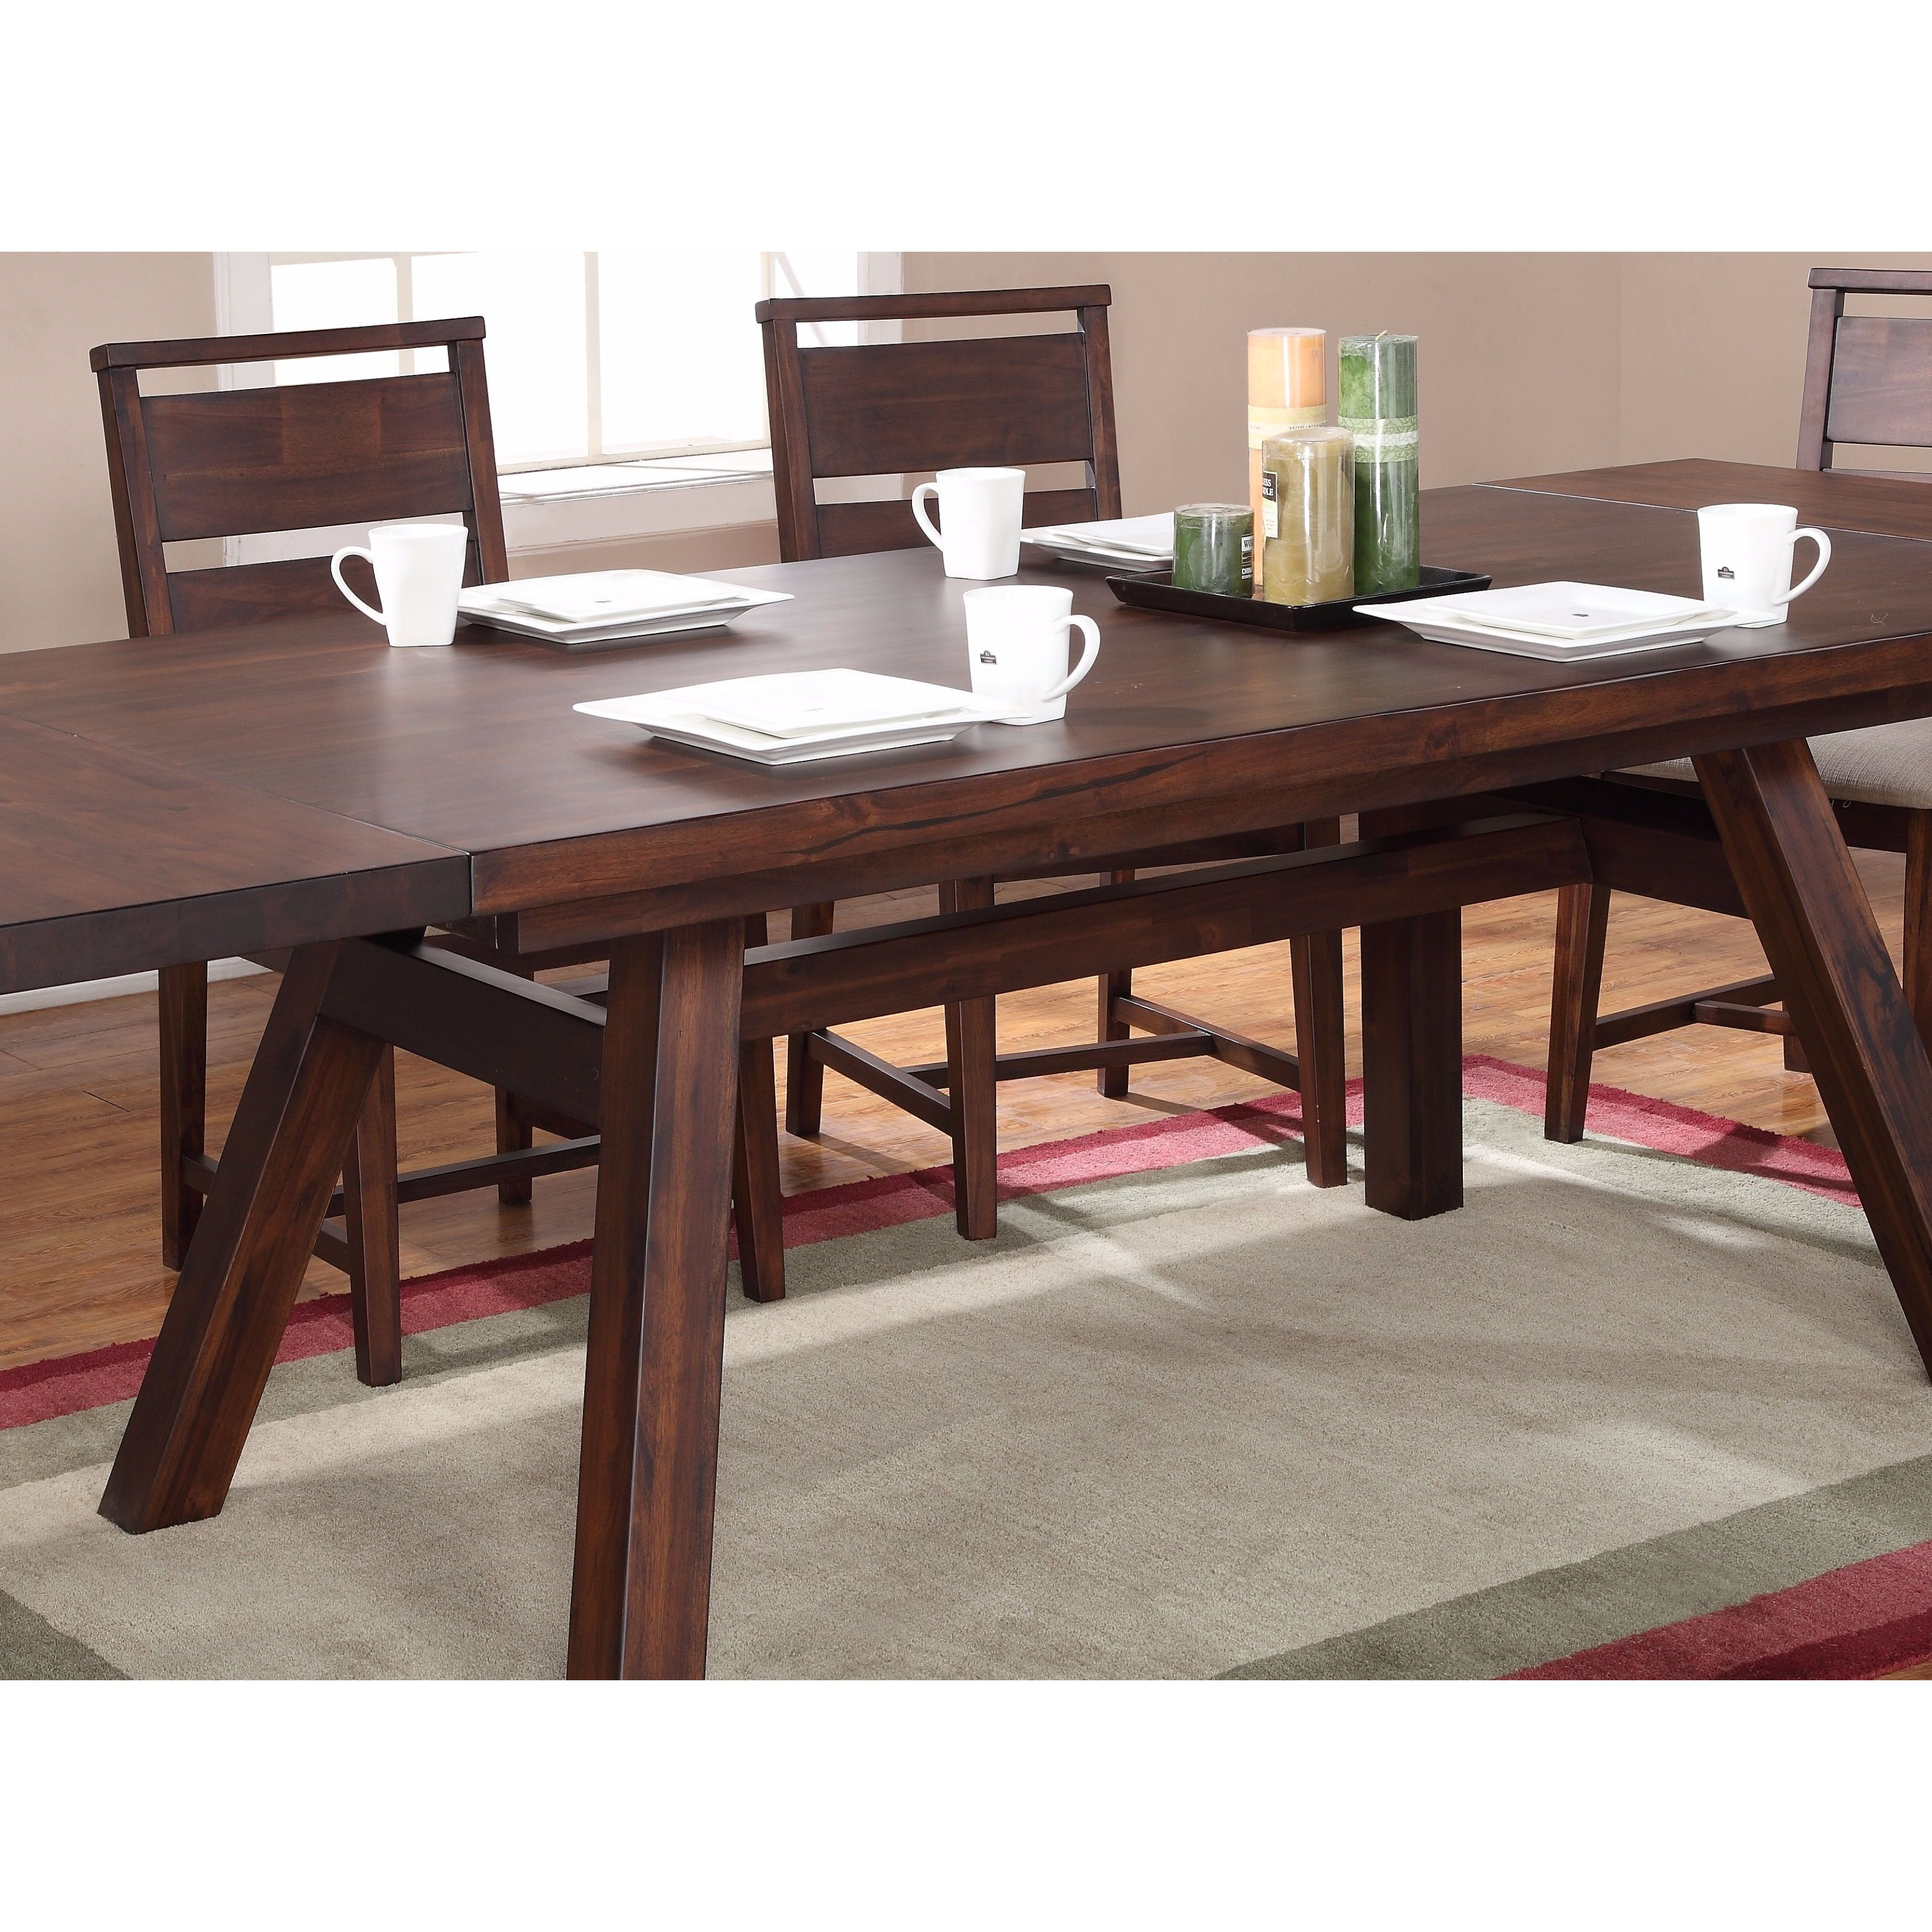 Solid Wood Modern Rectangular Extension Table Free Shipping Today 10608381